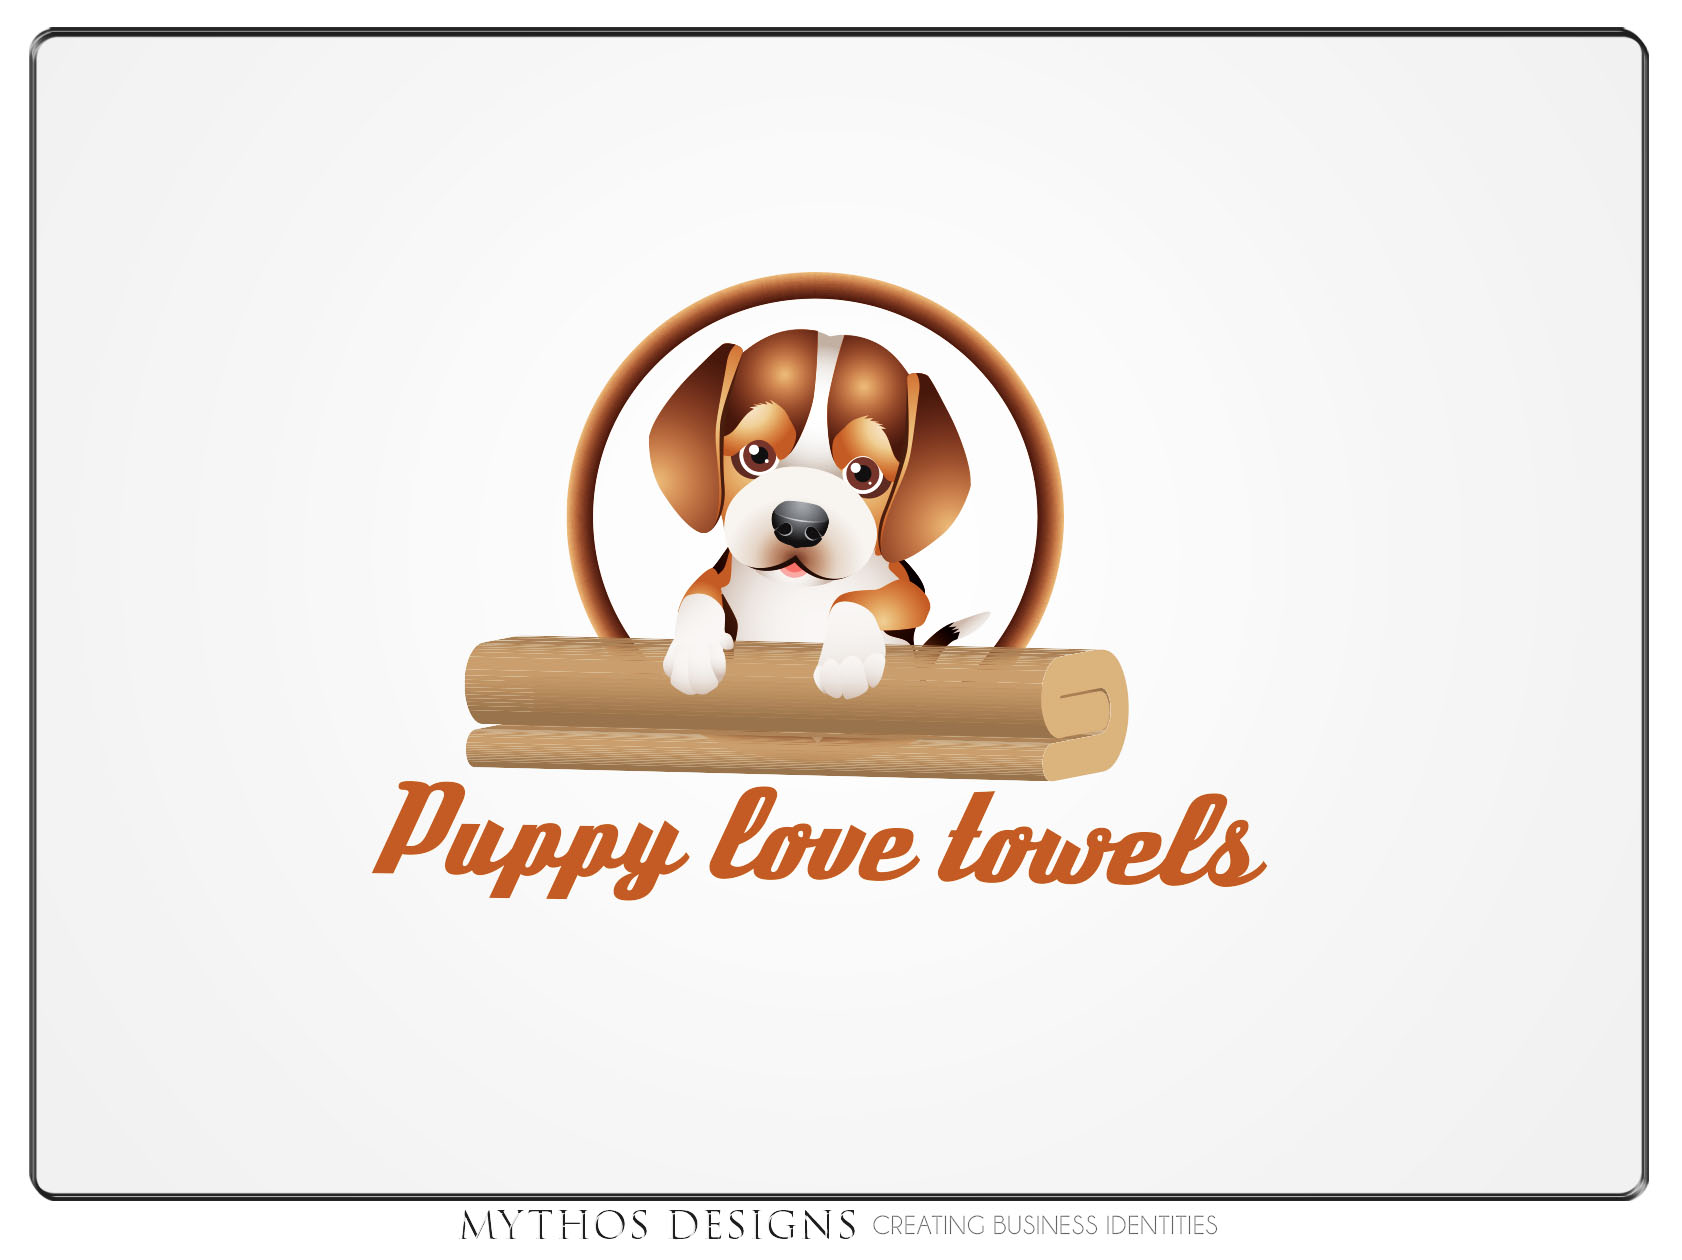 Logo Design by Mythos Designs - Entry No. 46 in the Logo Design Contest Artistic Logo Design for Puppy Love Towels.